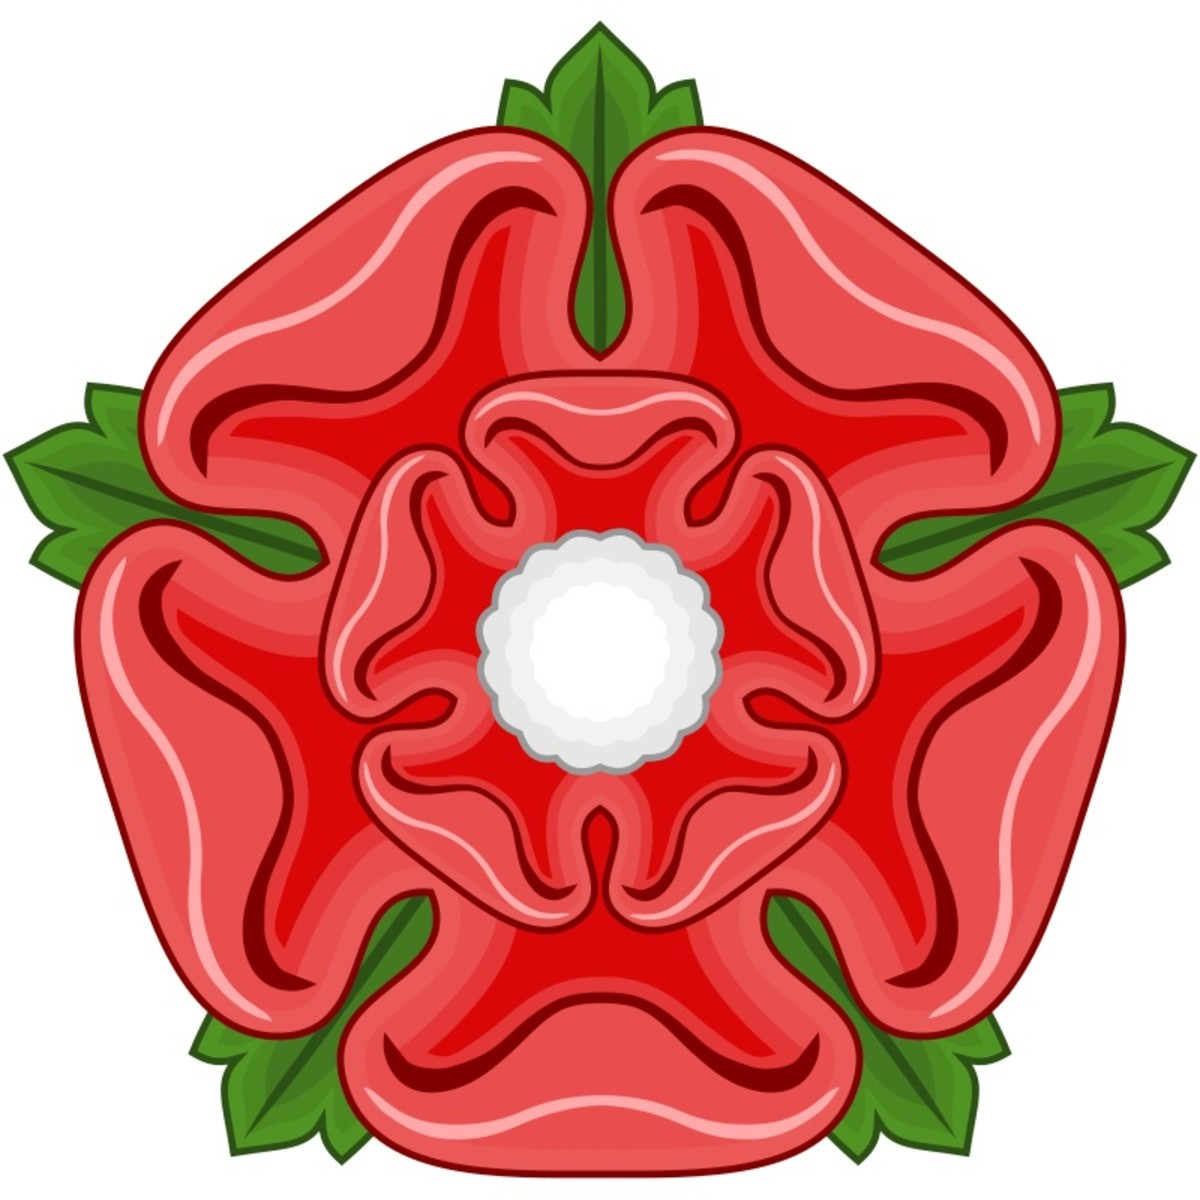 The badge of the House of Lancaster was a stylized version of the Apothecary's Rose.